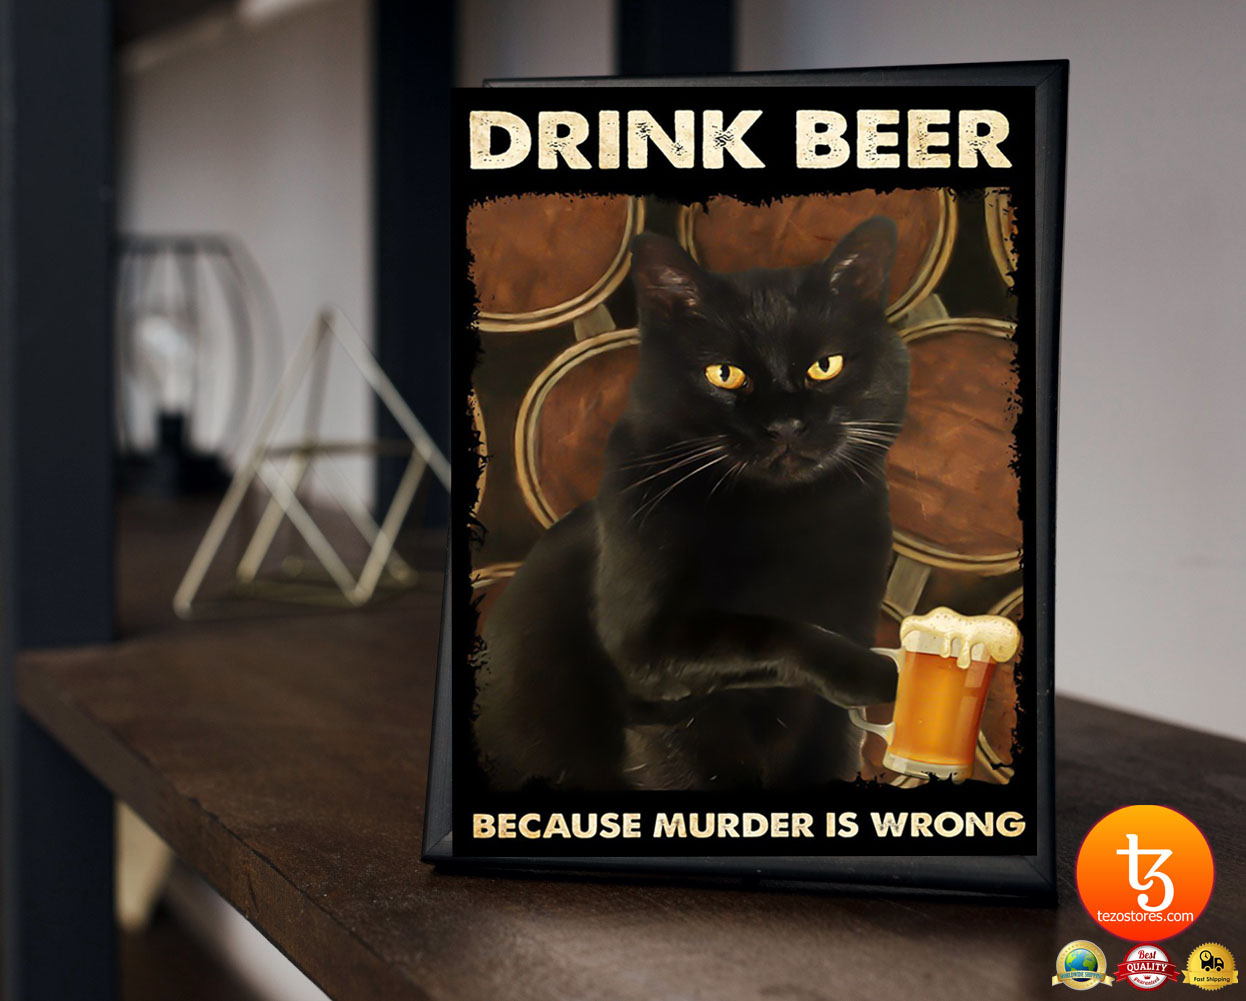 Black cat drink beer because murder is wrong poster 3